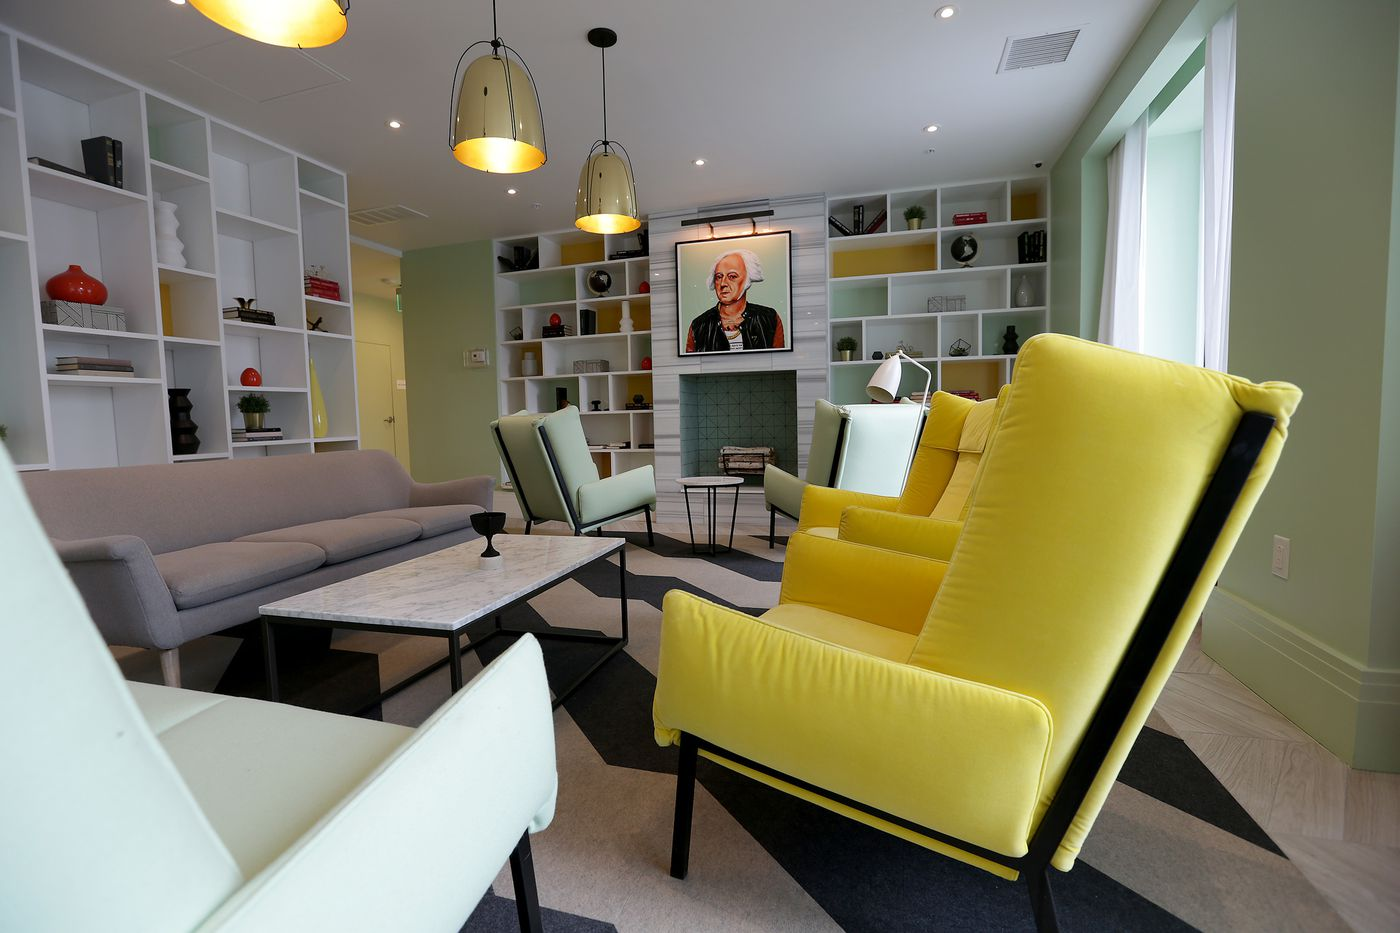 The Adams Lounge At Presidential City Apartment Complex In Total Provides David Maialetti